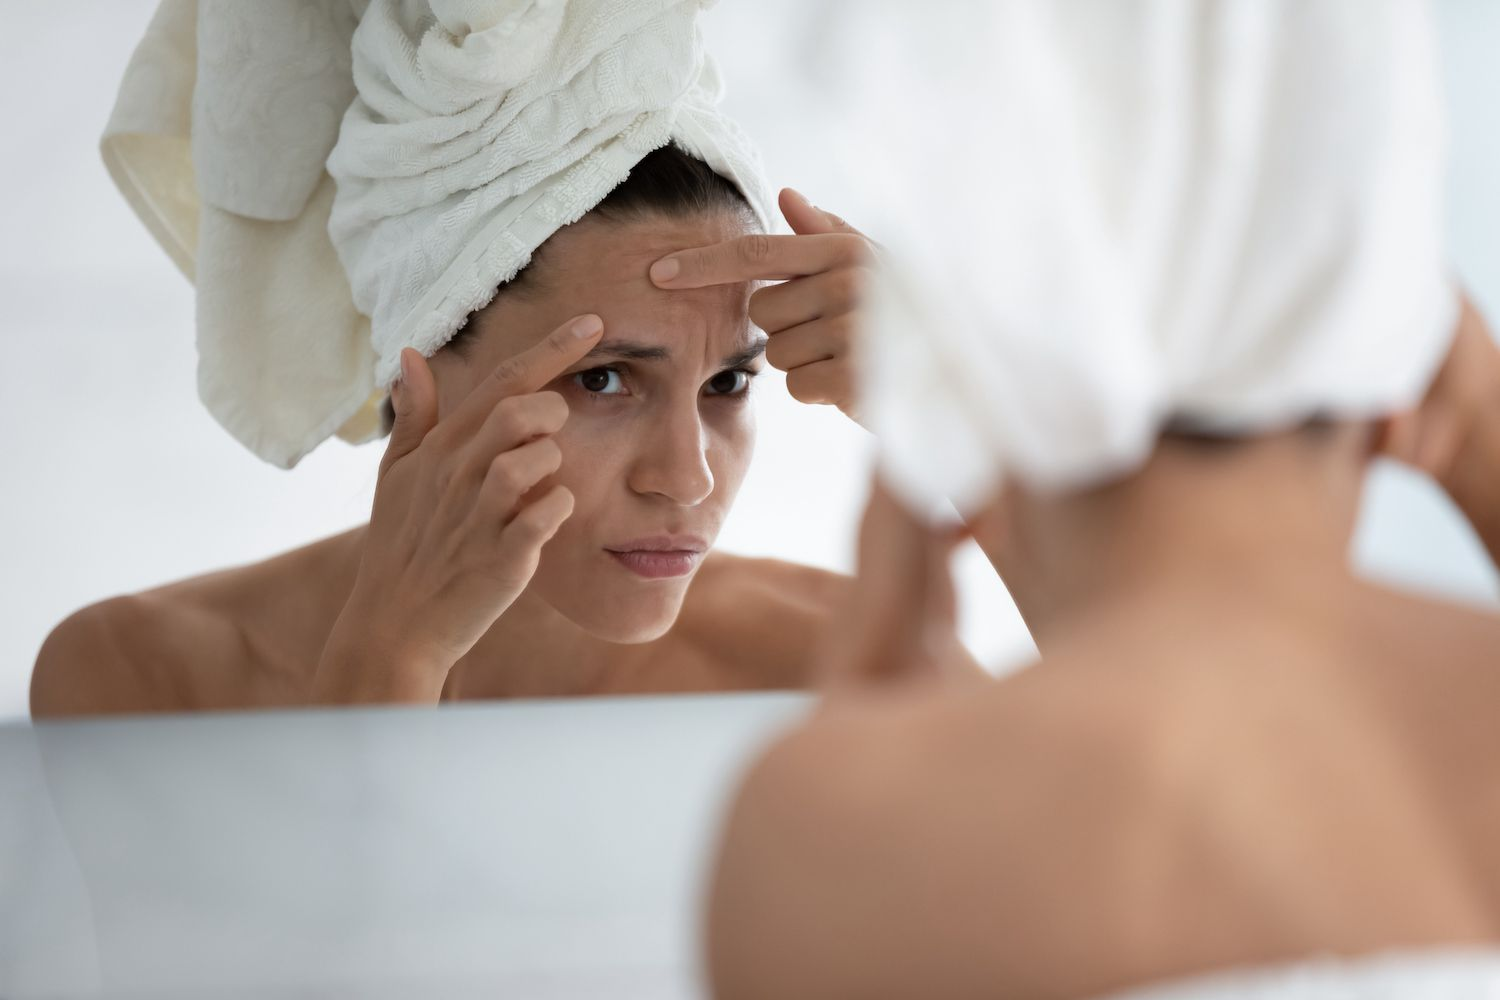 Close up unhappy woman squeeze pimple on forehead